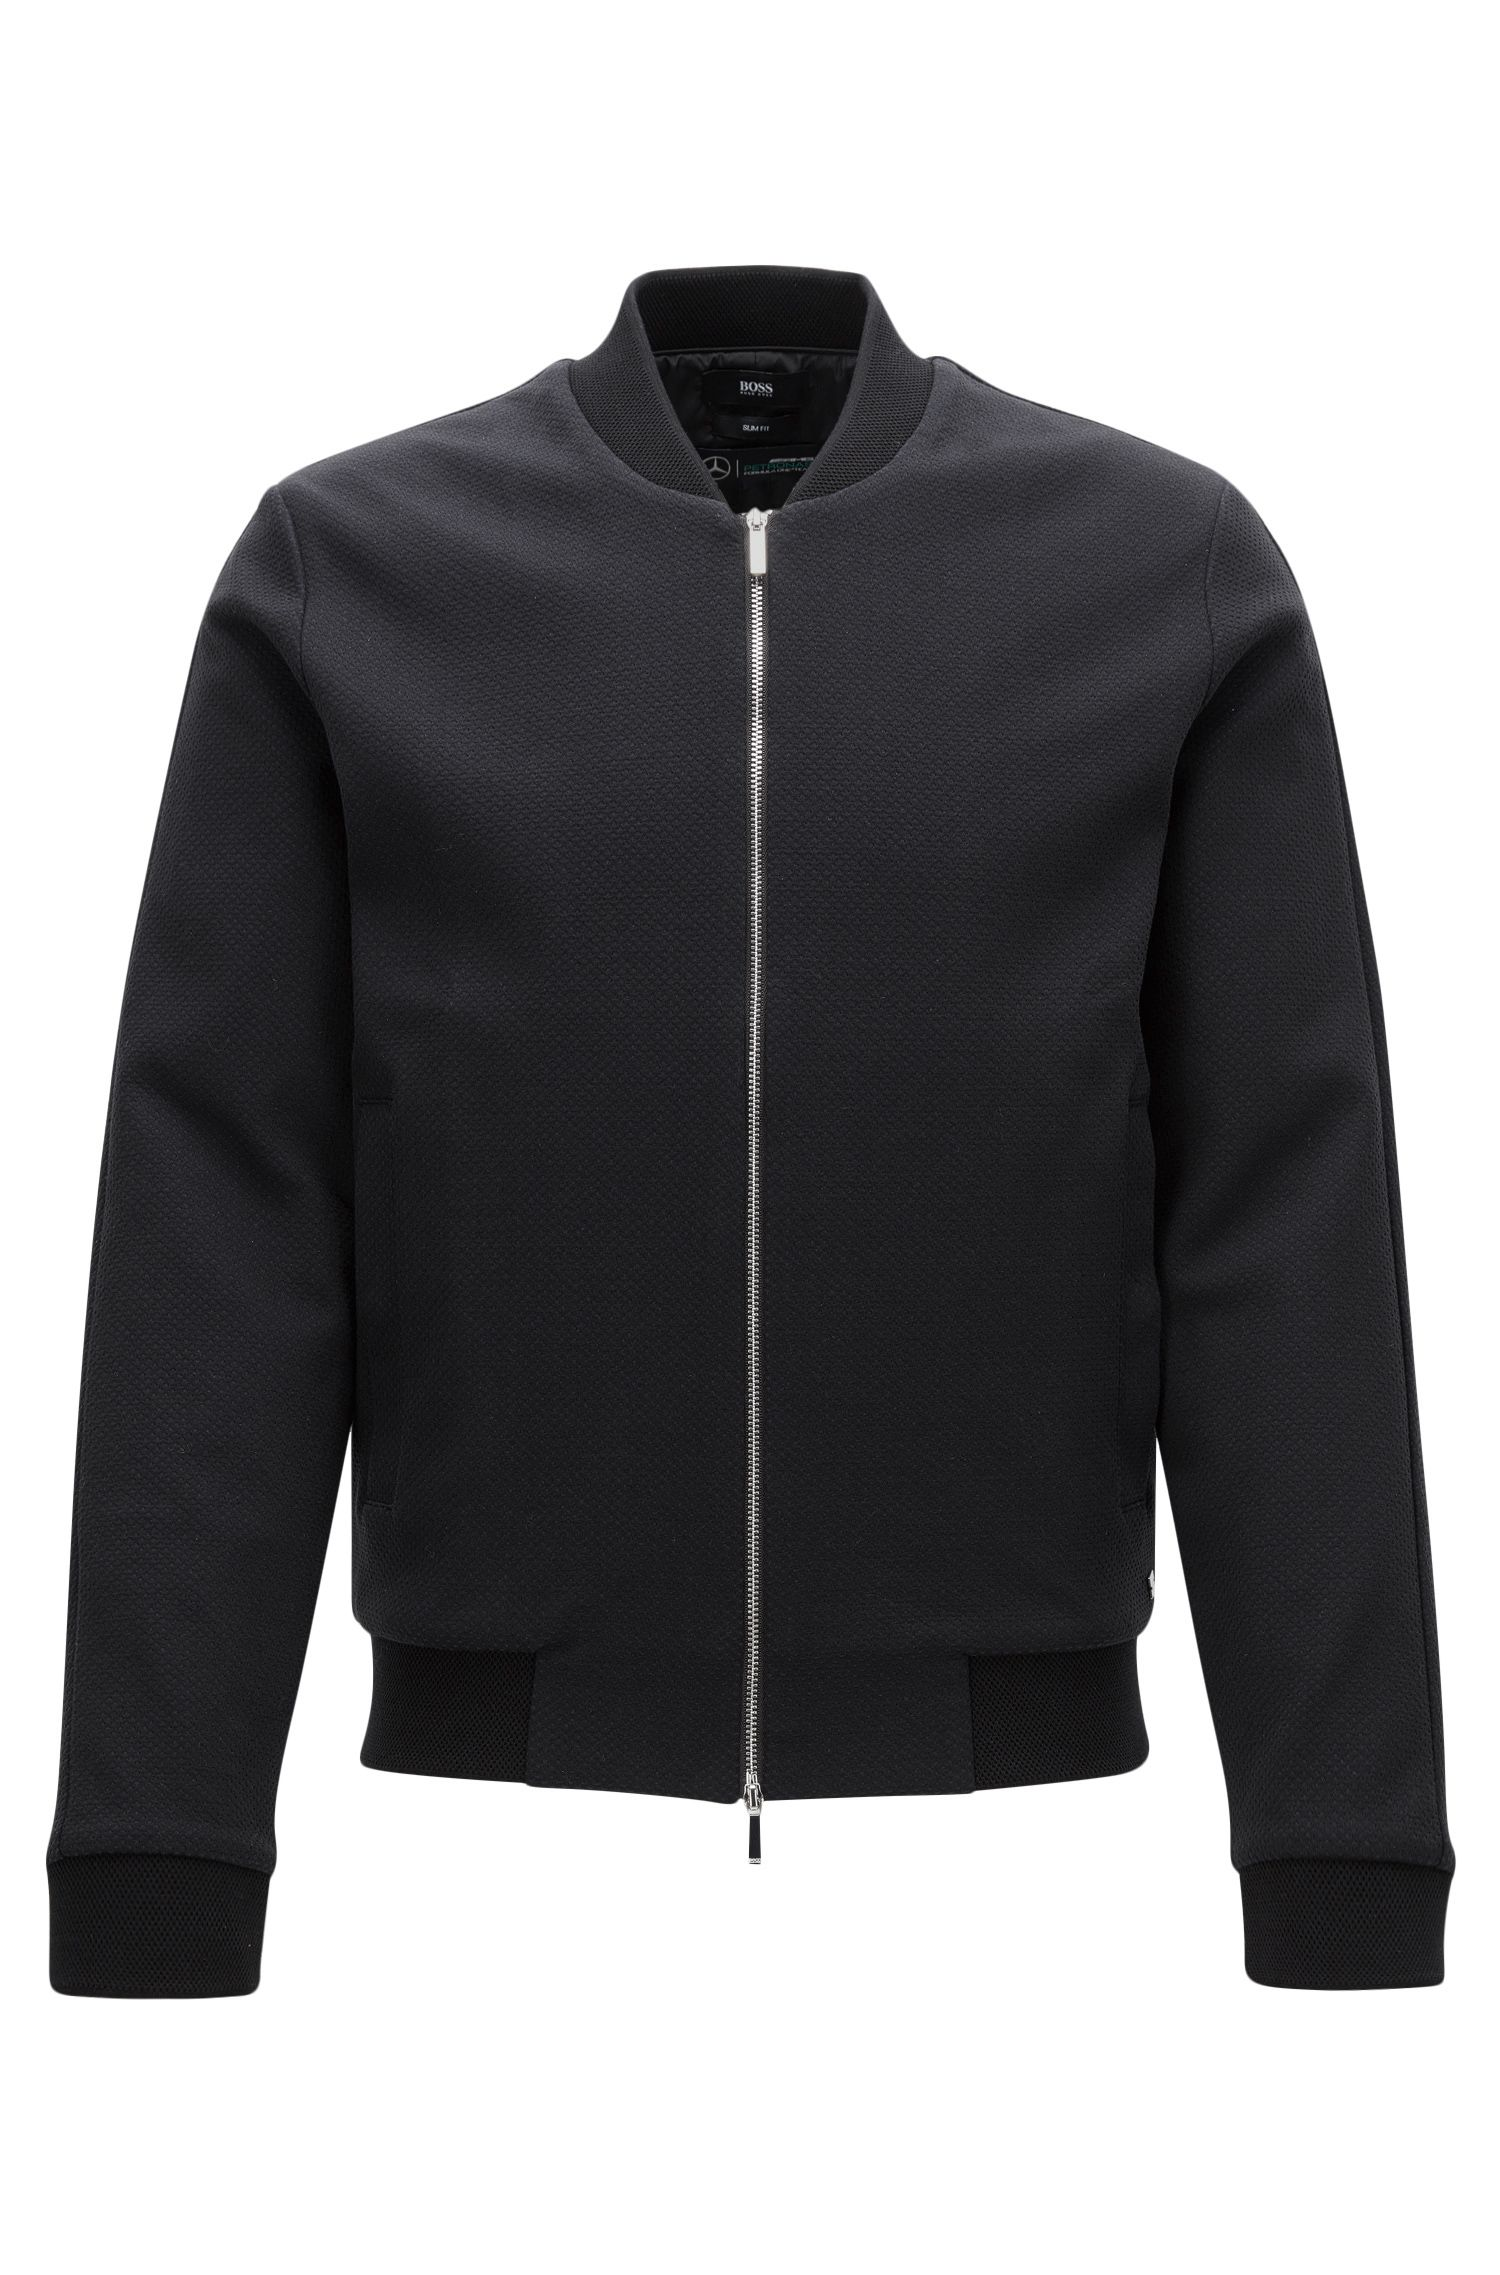 Slim-fit Mercedes-Benz jacket in cotton